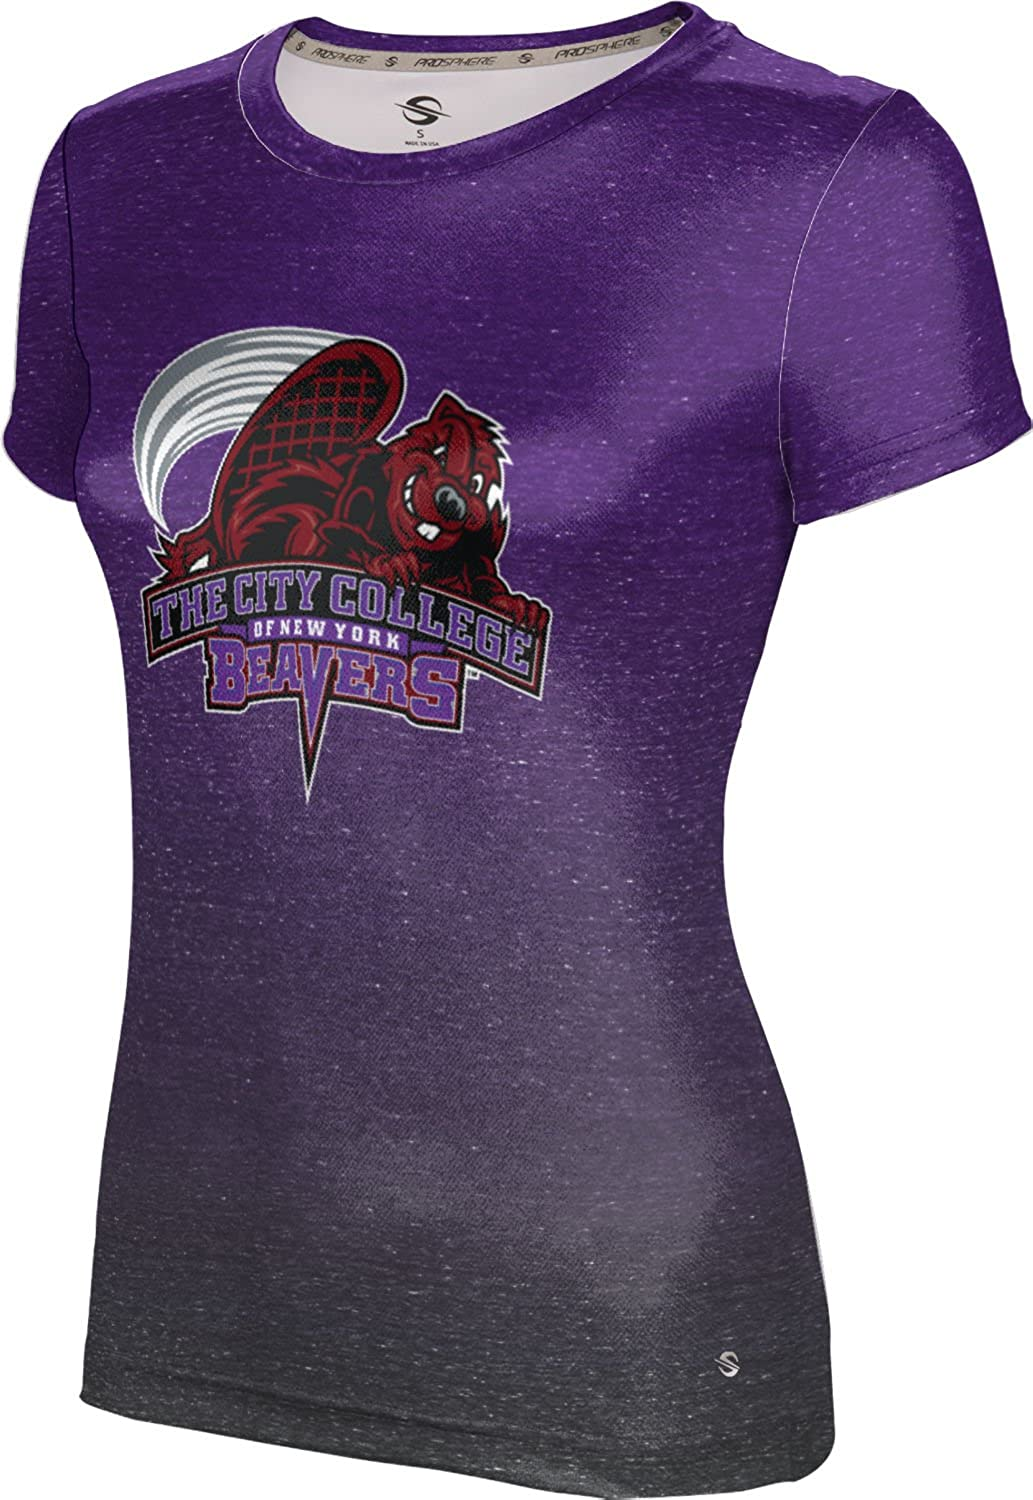 ProSphere City College of New York Girls' Performance T-Shirt (Ombre)